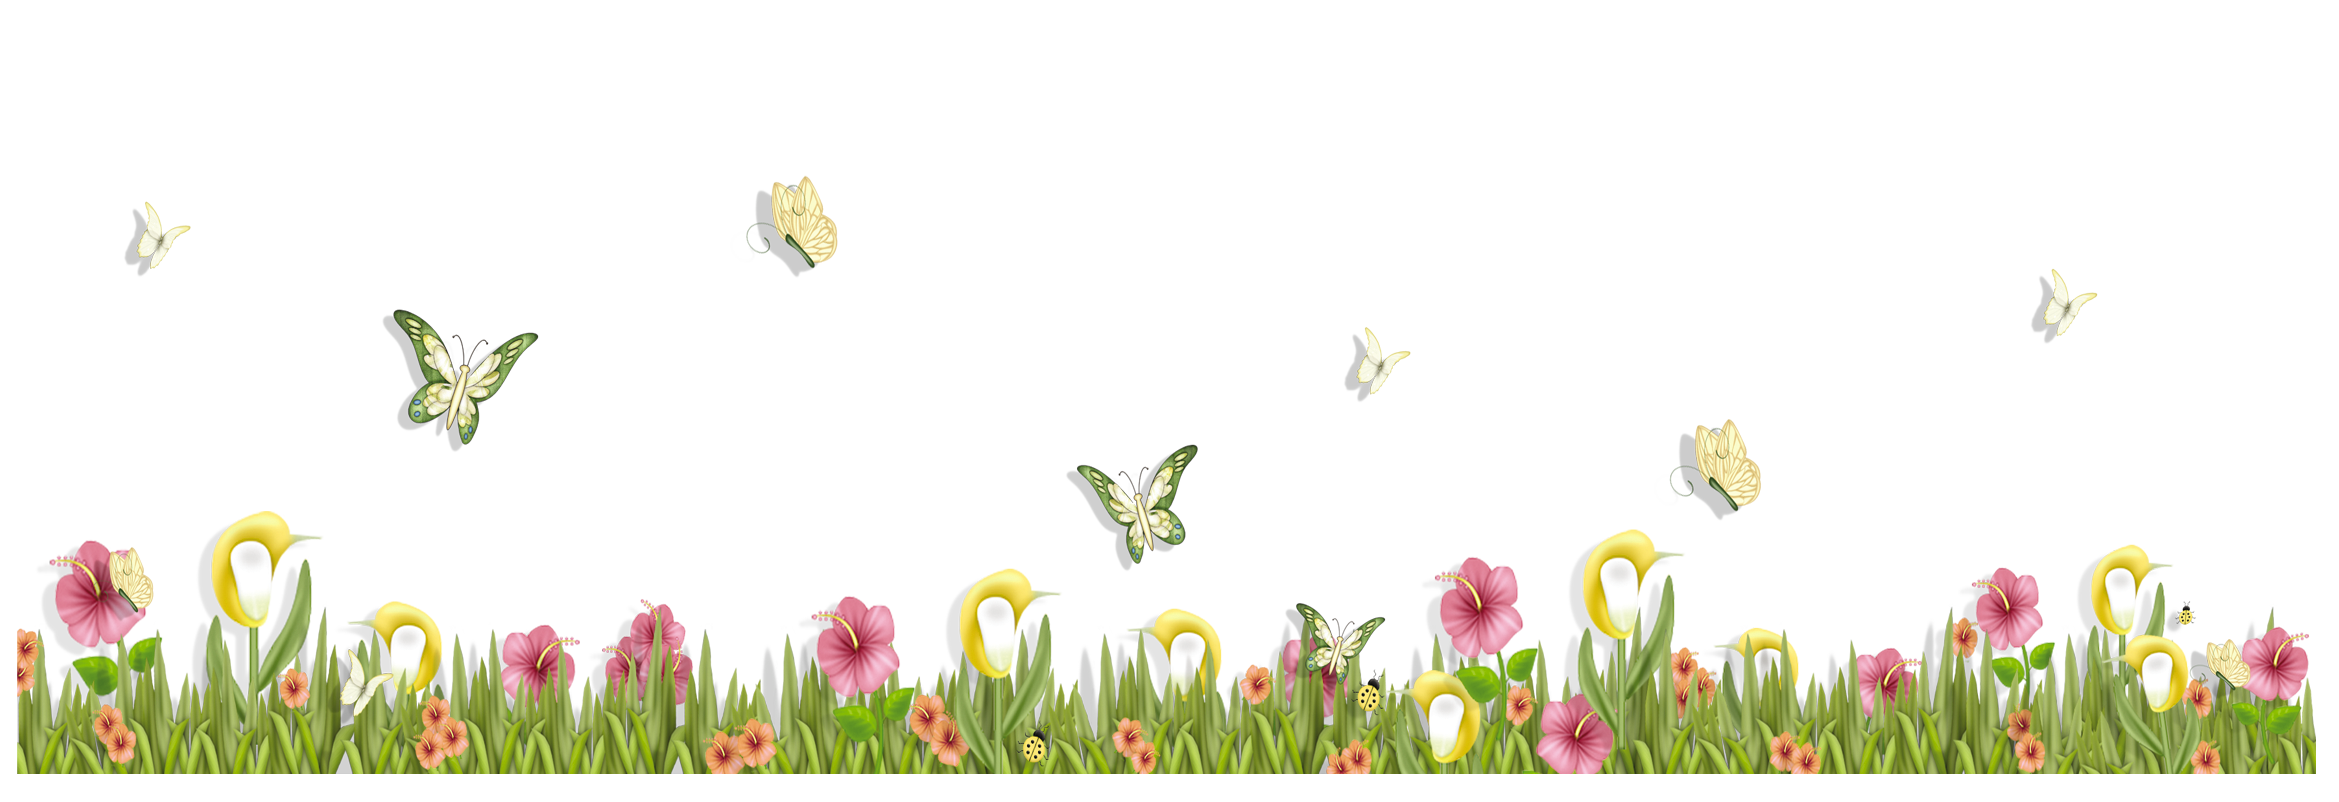 Clipart flowers and butterflies png. Grass with gallery view